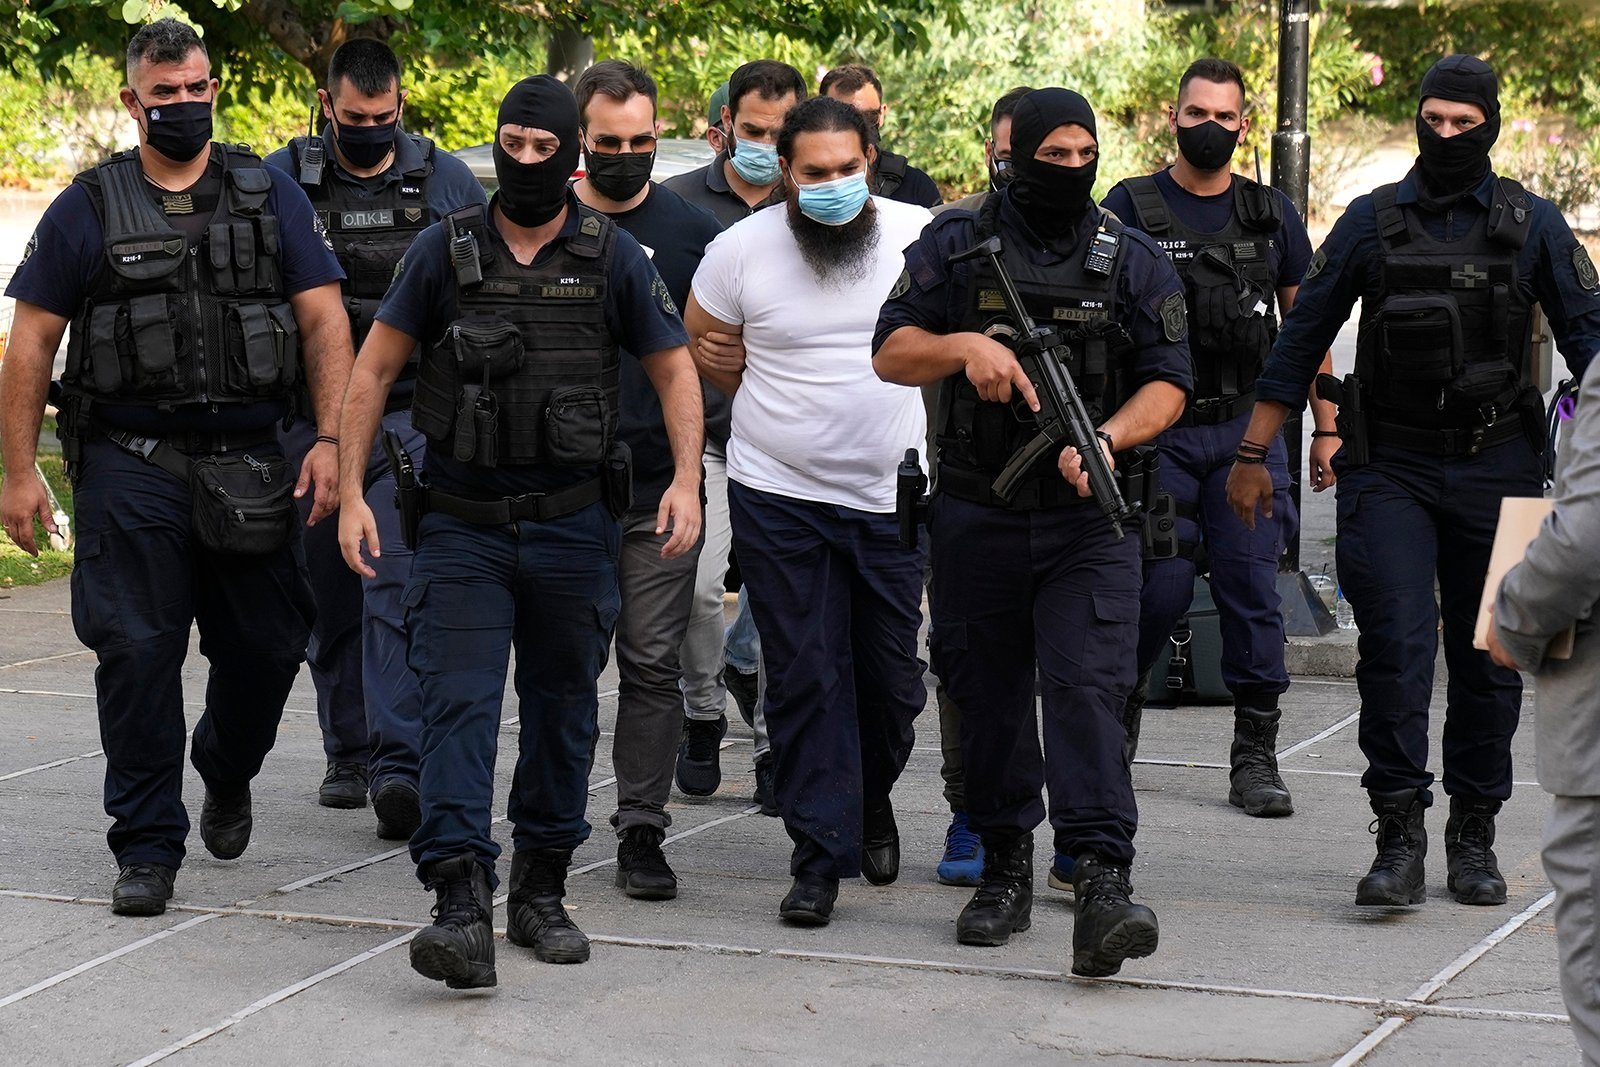 Police escort a suspect, in the center, to the prosecutor's office in a court in Athens, Greece, Thursday, June 24, 2021. The defrocked Greek Orthodox priest has been charged with several counts of causing serious bodily harm following an acid attack that injured seven senior bishops and three others.  (AP Photo / Petros Giannakouris)